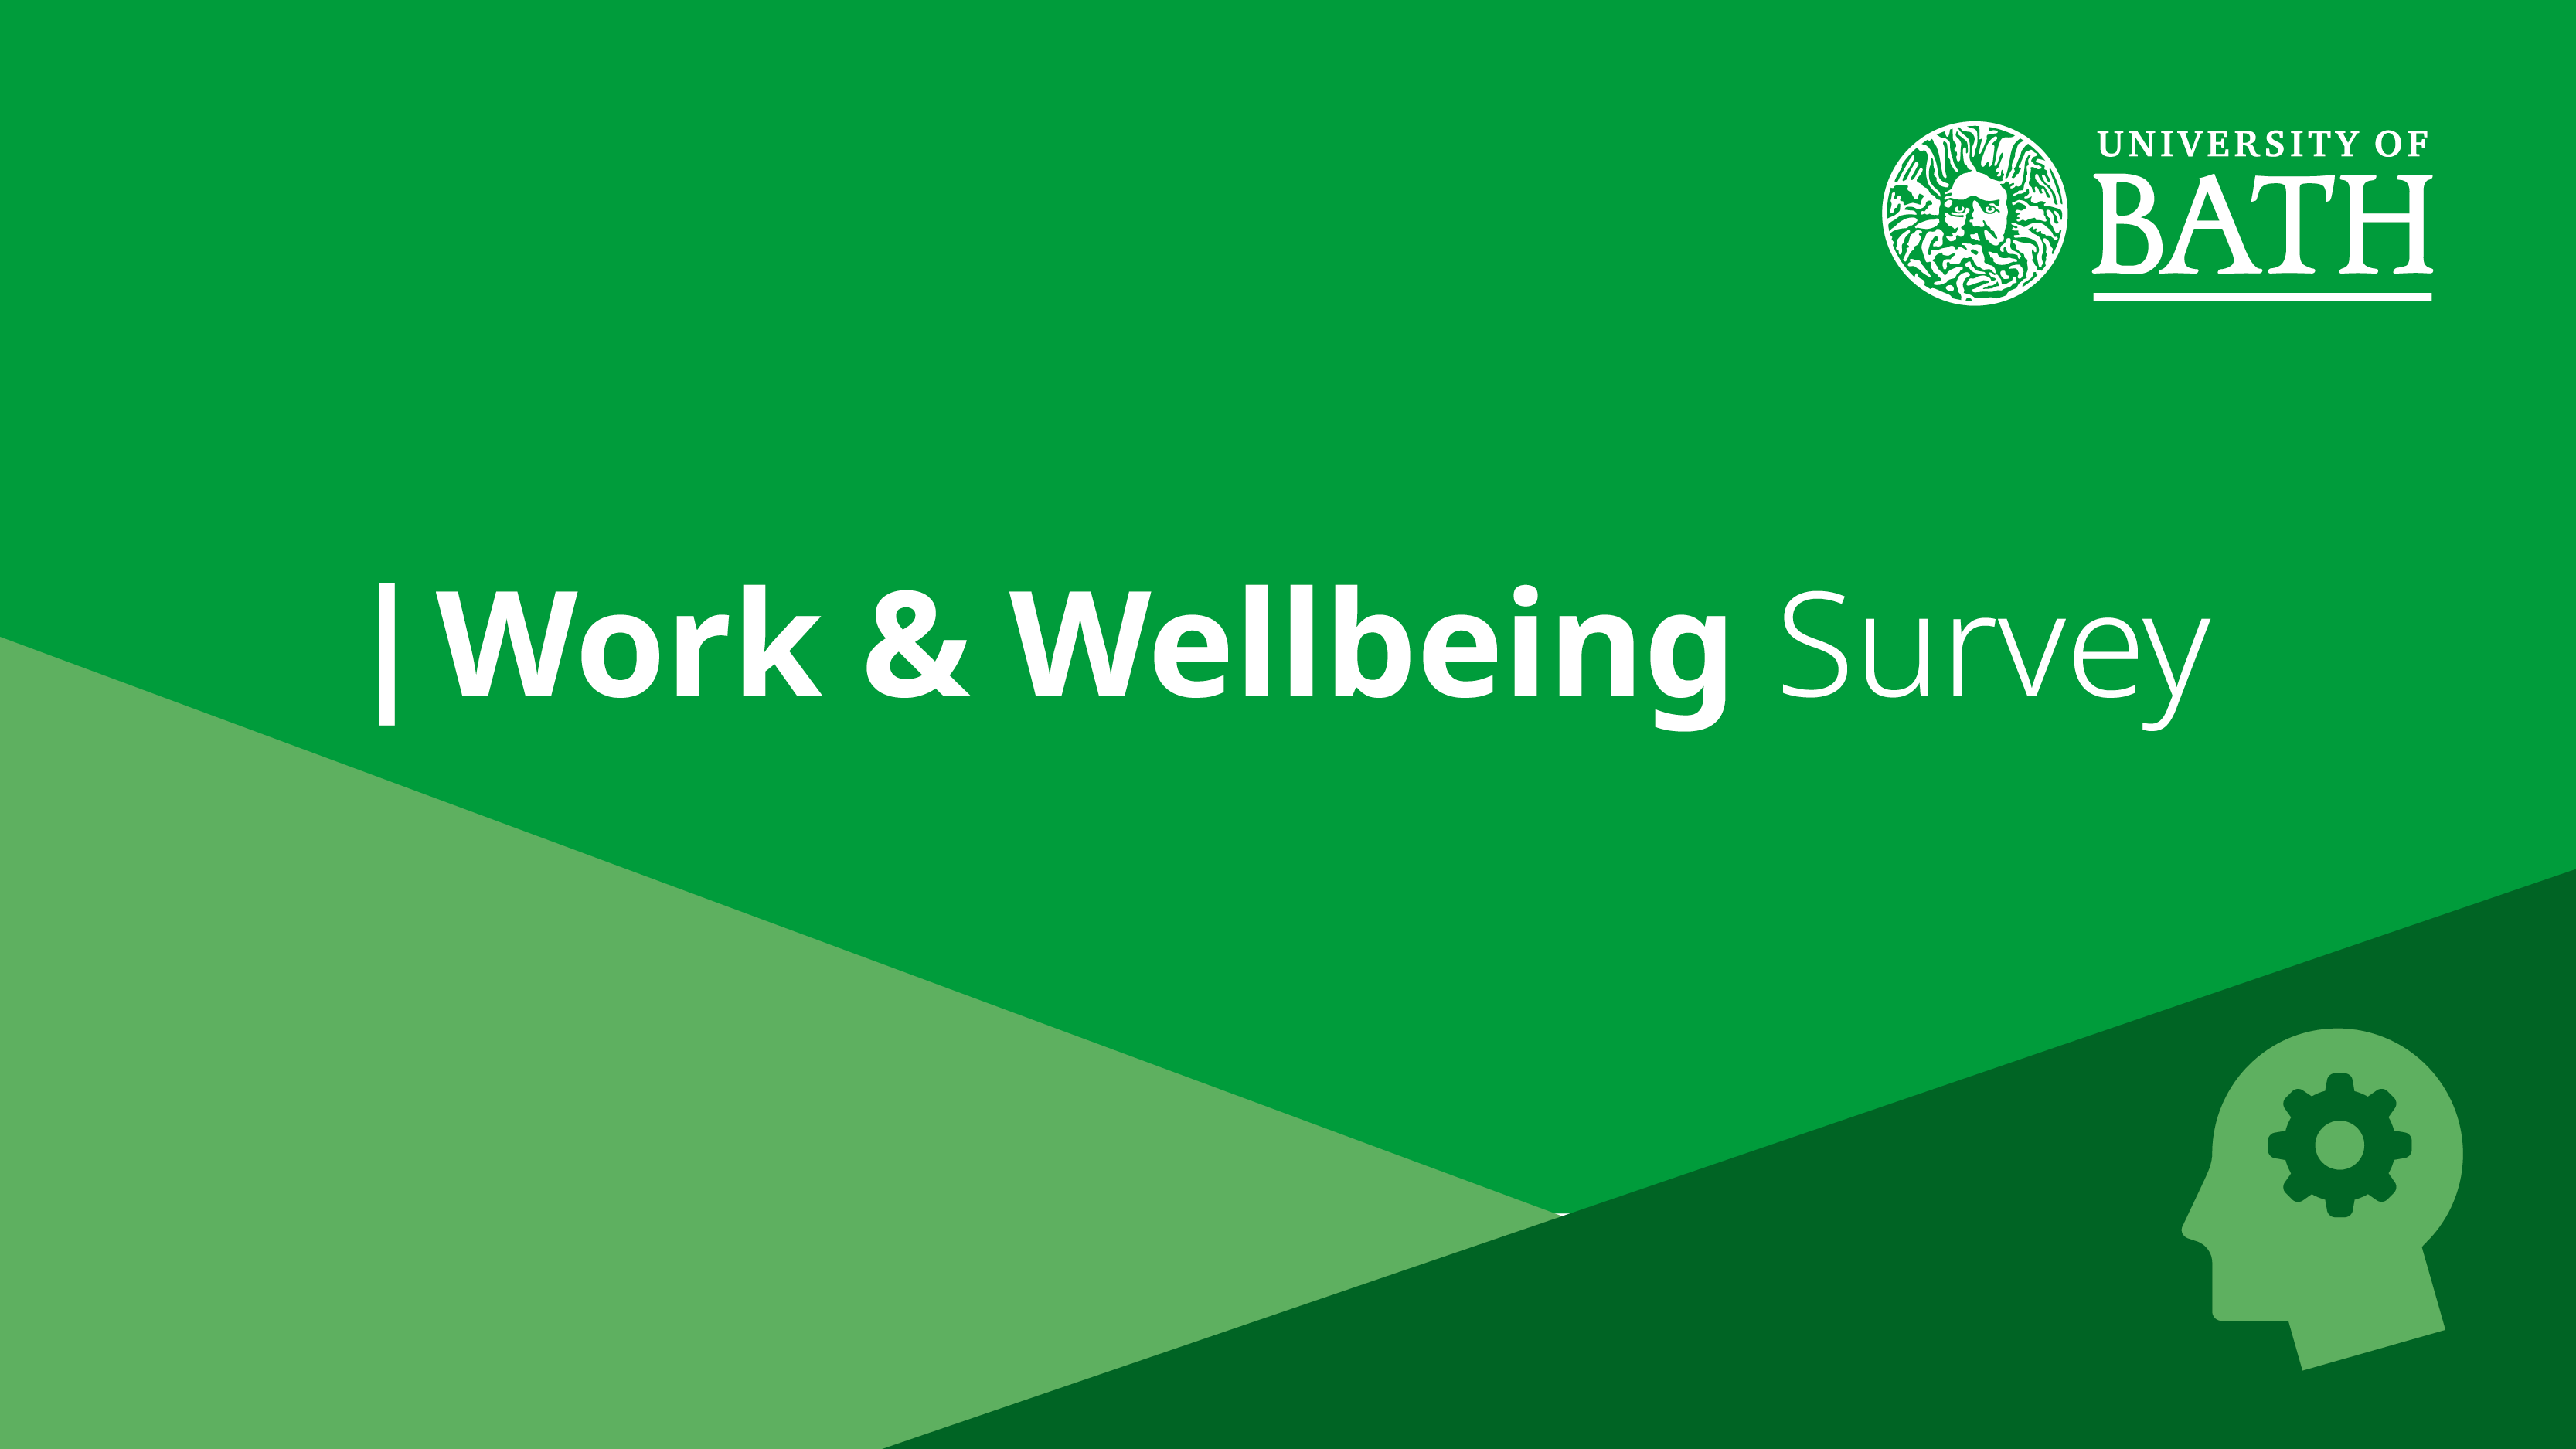 Staff Work and Wellbeing Survey green logo